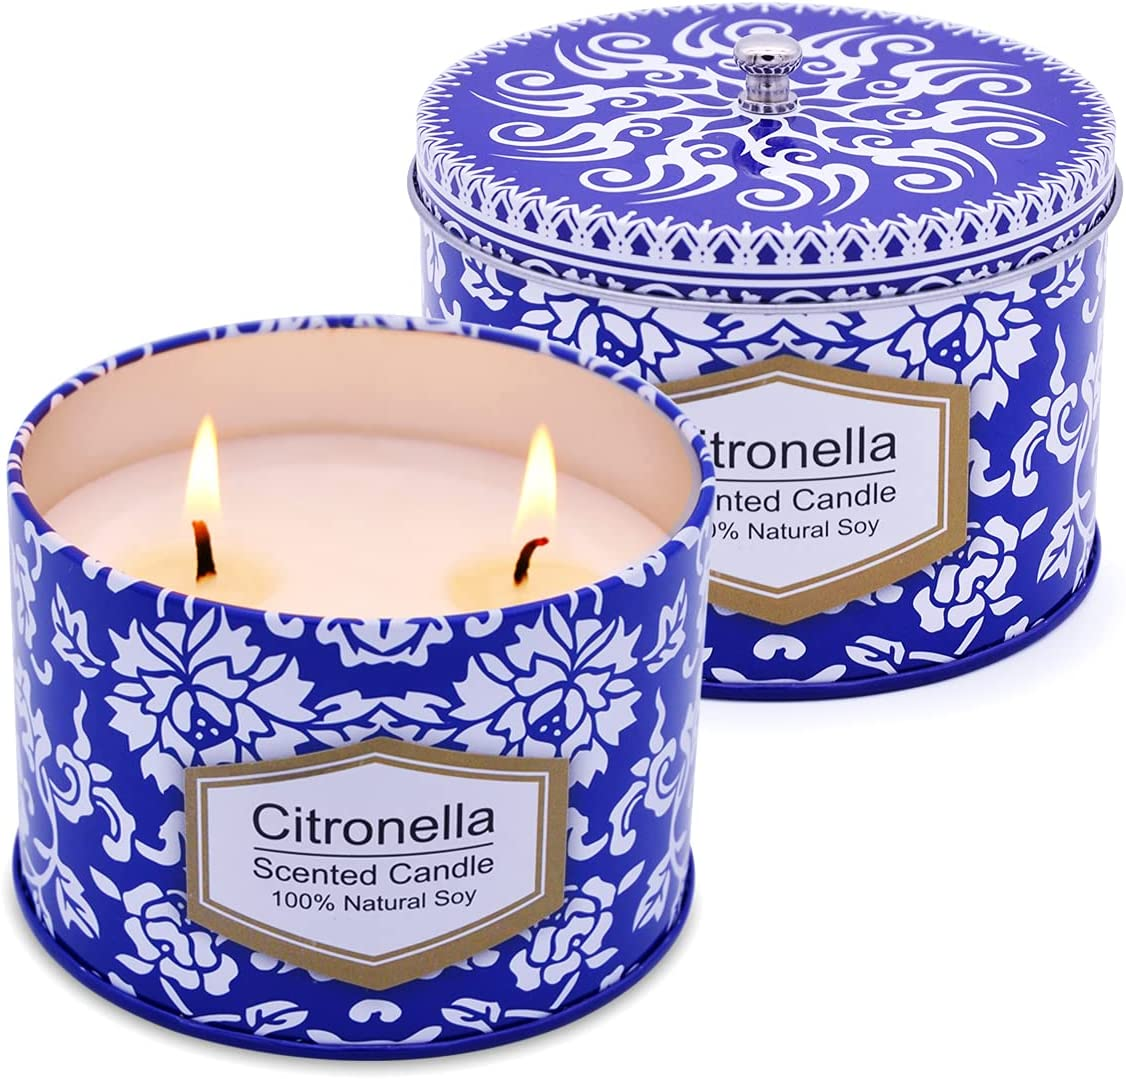 Uwax Cheap mail order shopping 2 Pack of depot Citronella Candle White and Blue Portable 8.5Oz